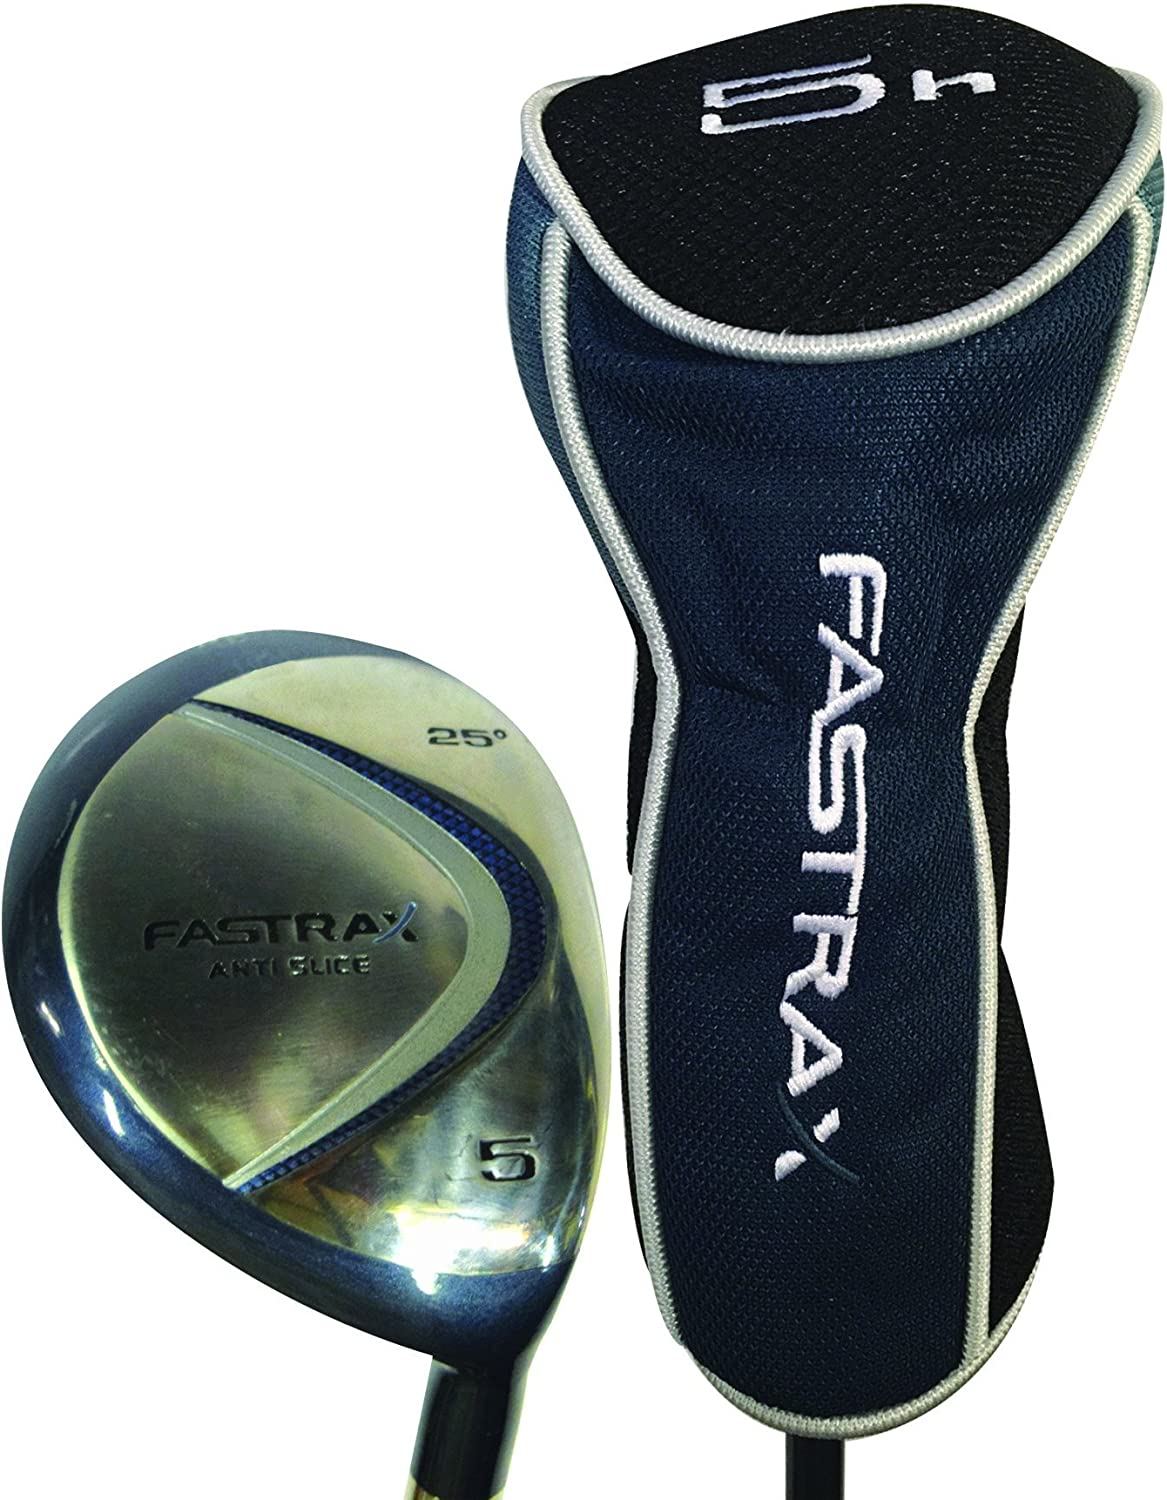 Fastrax Hybrid Stainless Irons Right-Handed